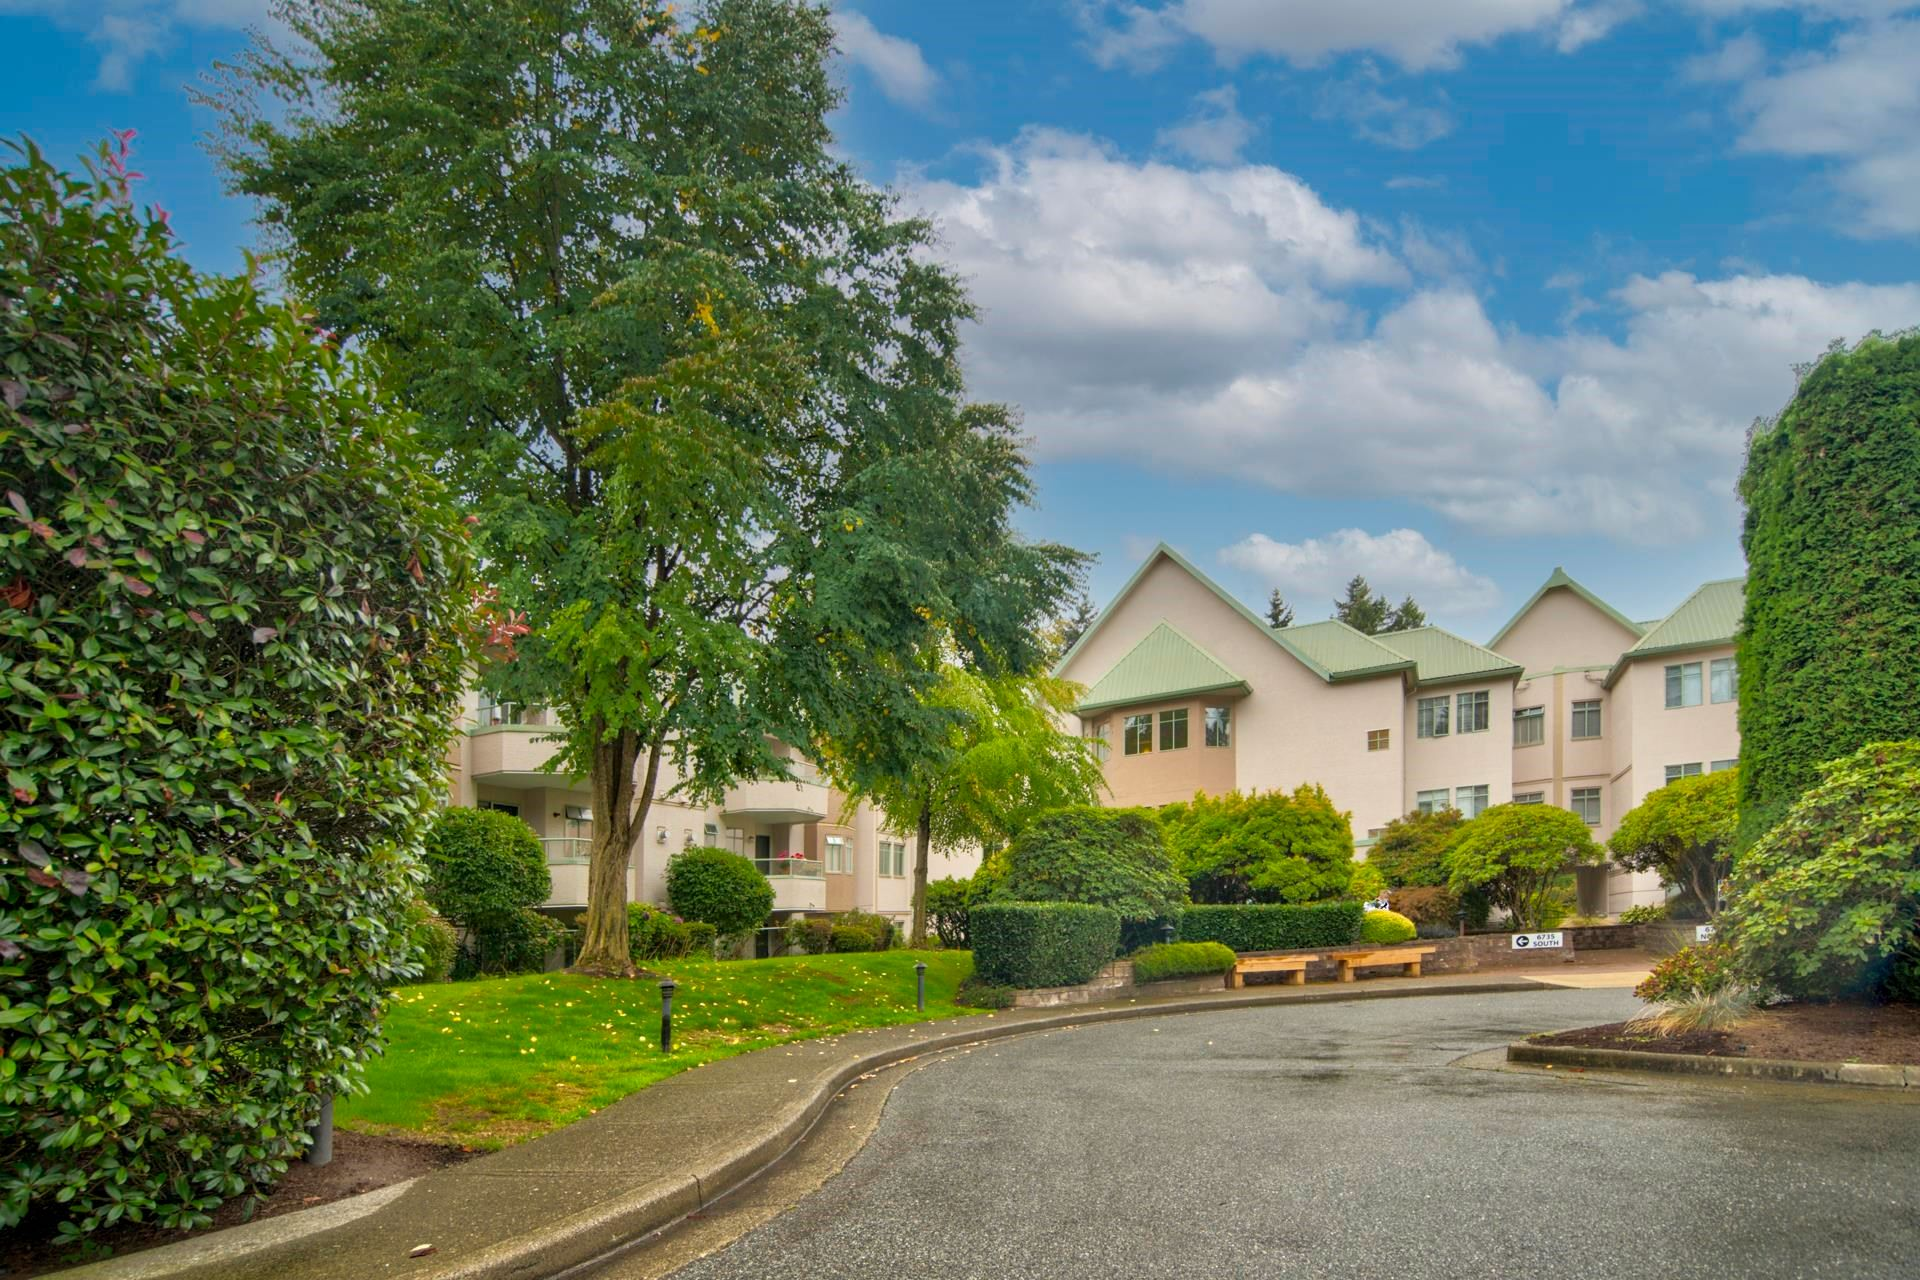 """Main Photo: 316 6735 STATION HILL Court in Burnaby: South Slope Condo for sale in """"COURTYARDS"""" (Burnaby South)  : MLS®# R2615271"""